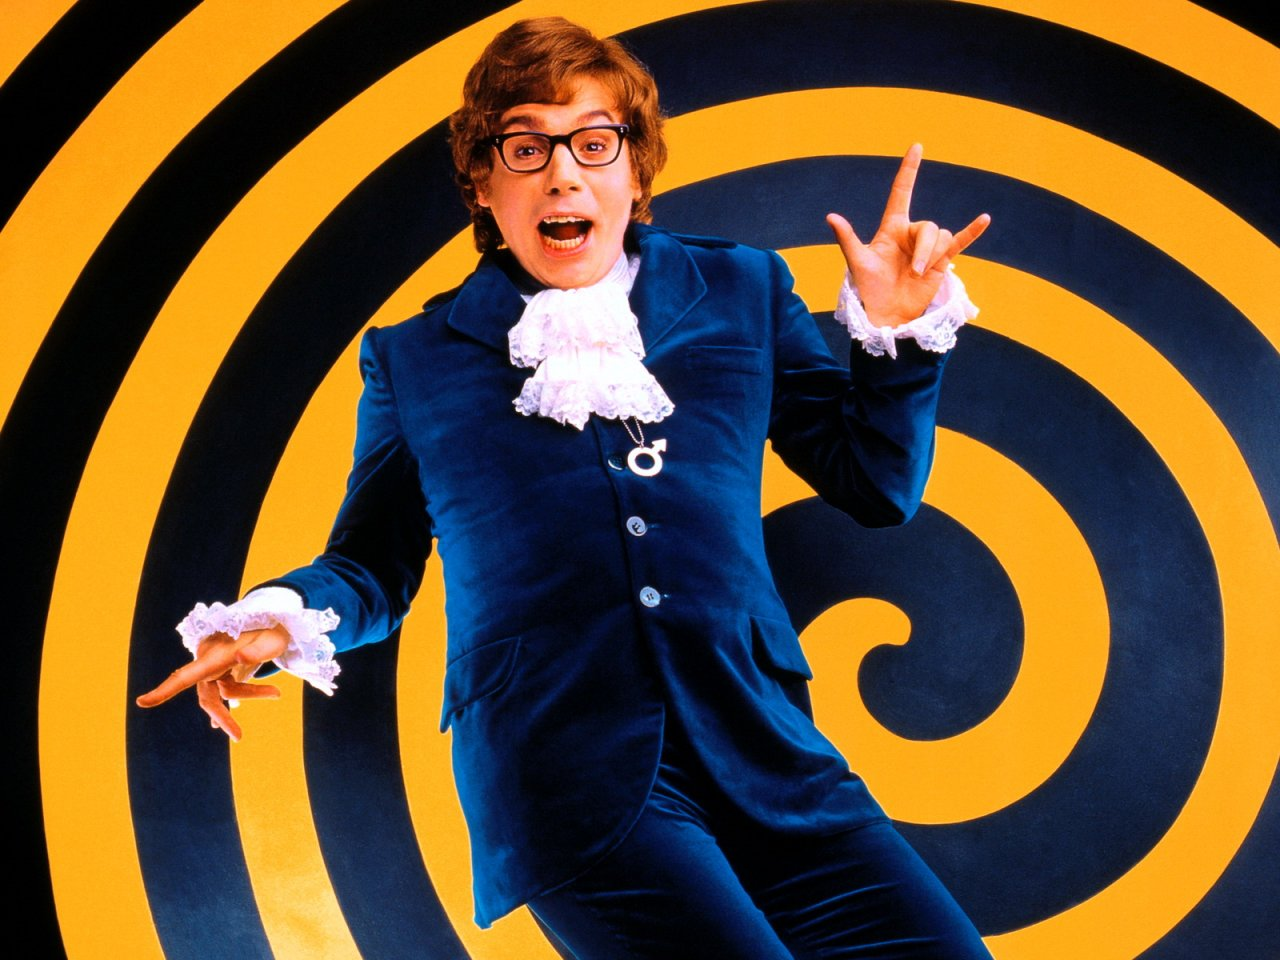 http://st.kinopoisk.ru/im/wallpaper/5/8/0/kinopoisk.ru-Austin-Powers_3A-The-Spy-Who-Shagged-Me-580911--w--1280.jpg